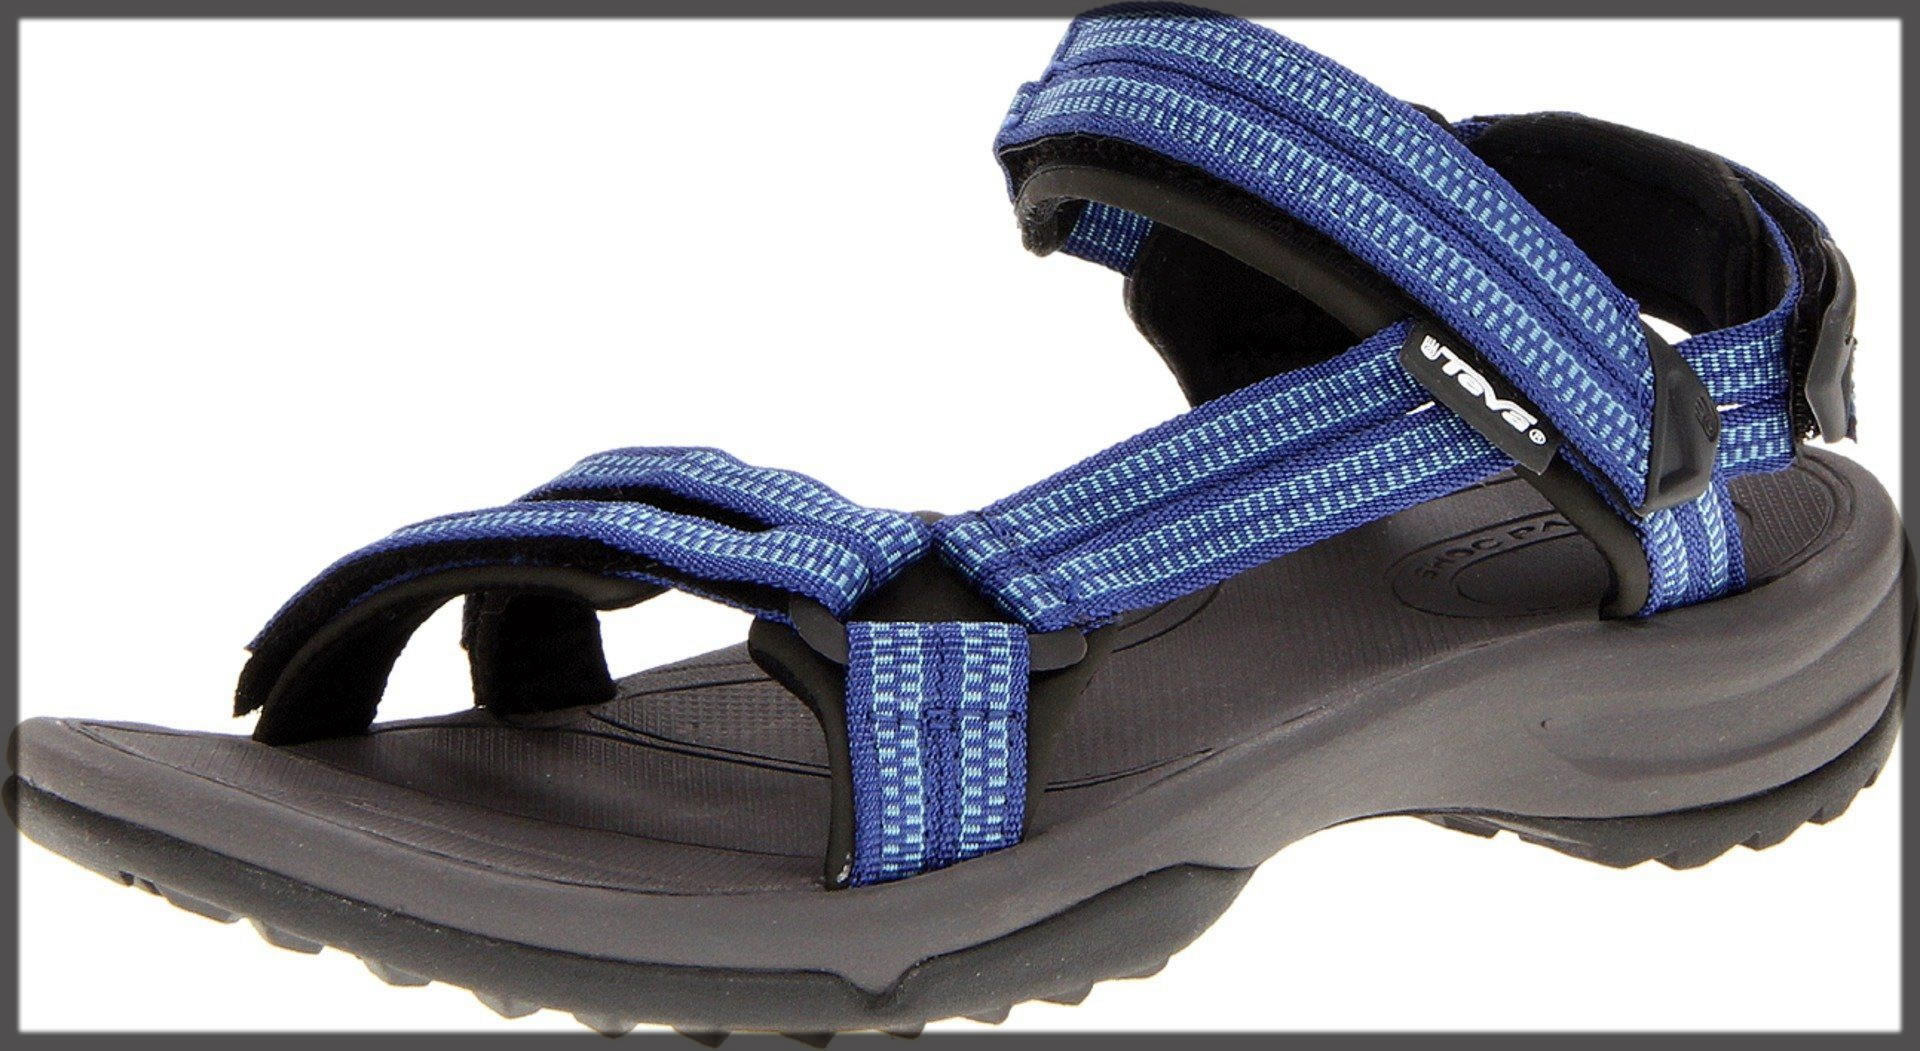 Terra Athletic Sandal for women